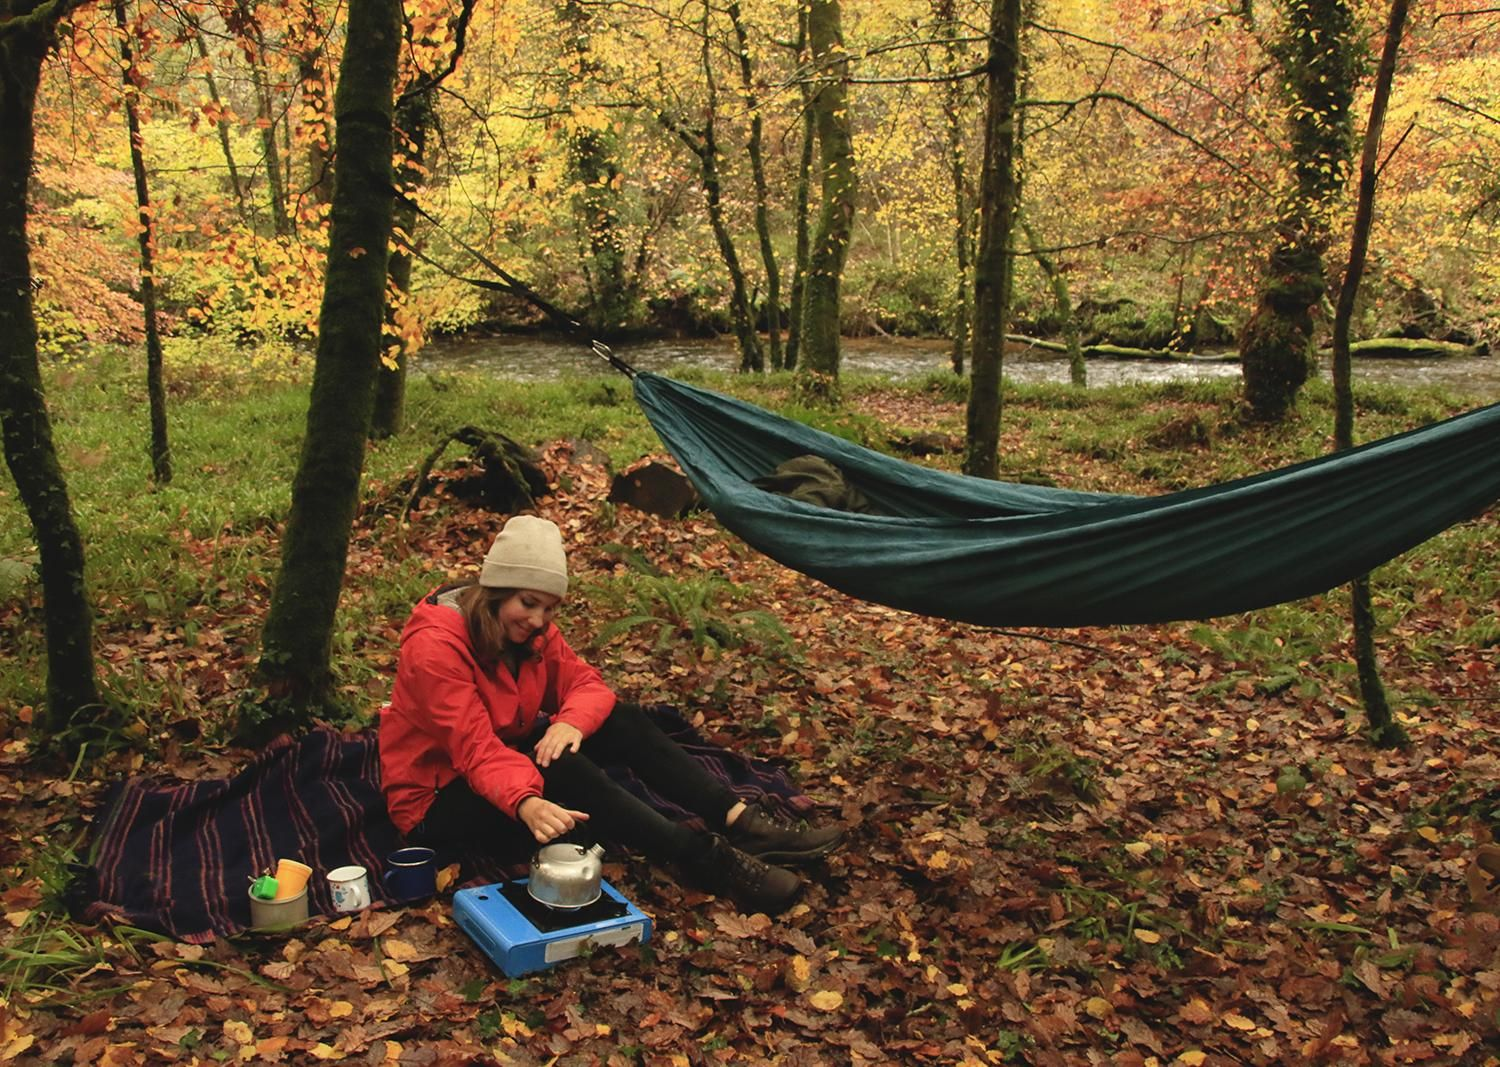 A weekend of exploring on the moors and hammock camping in the woods